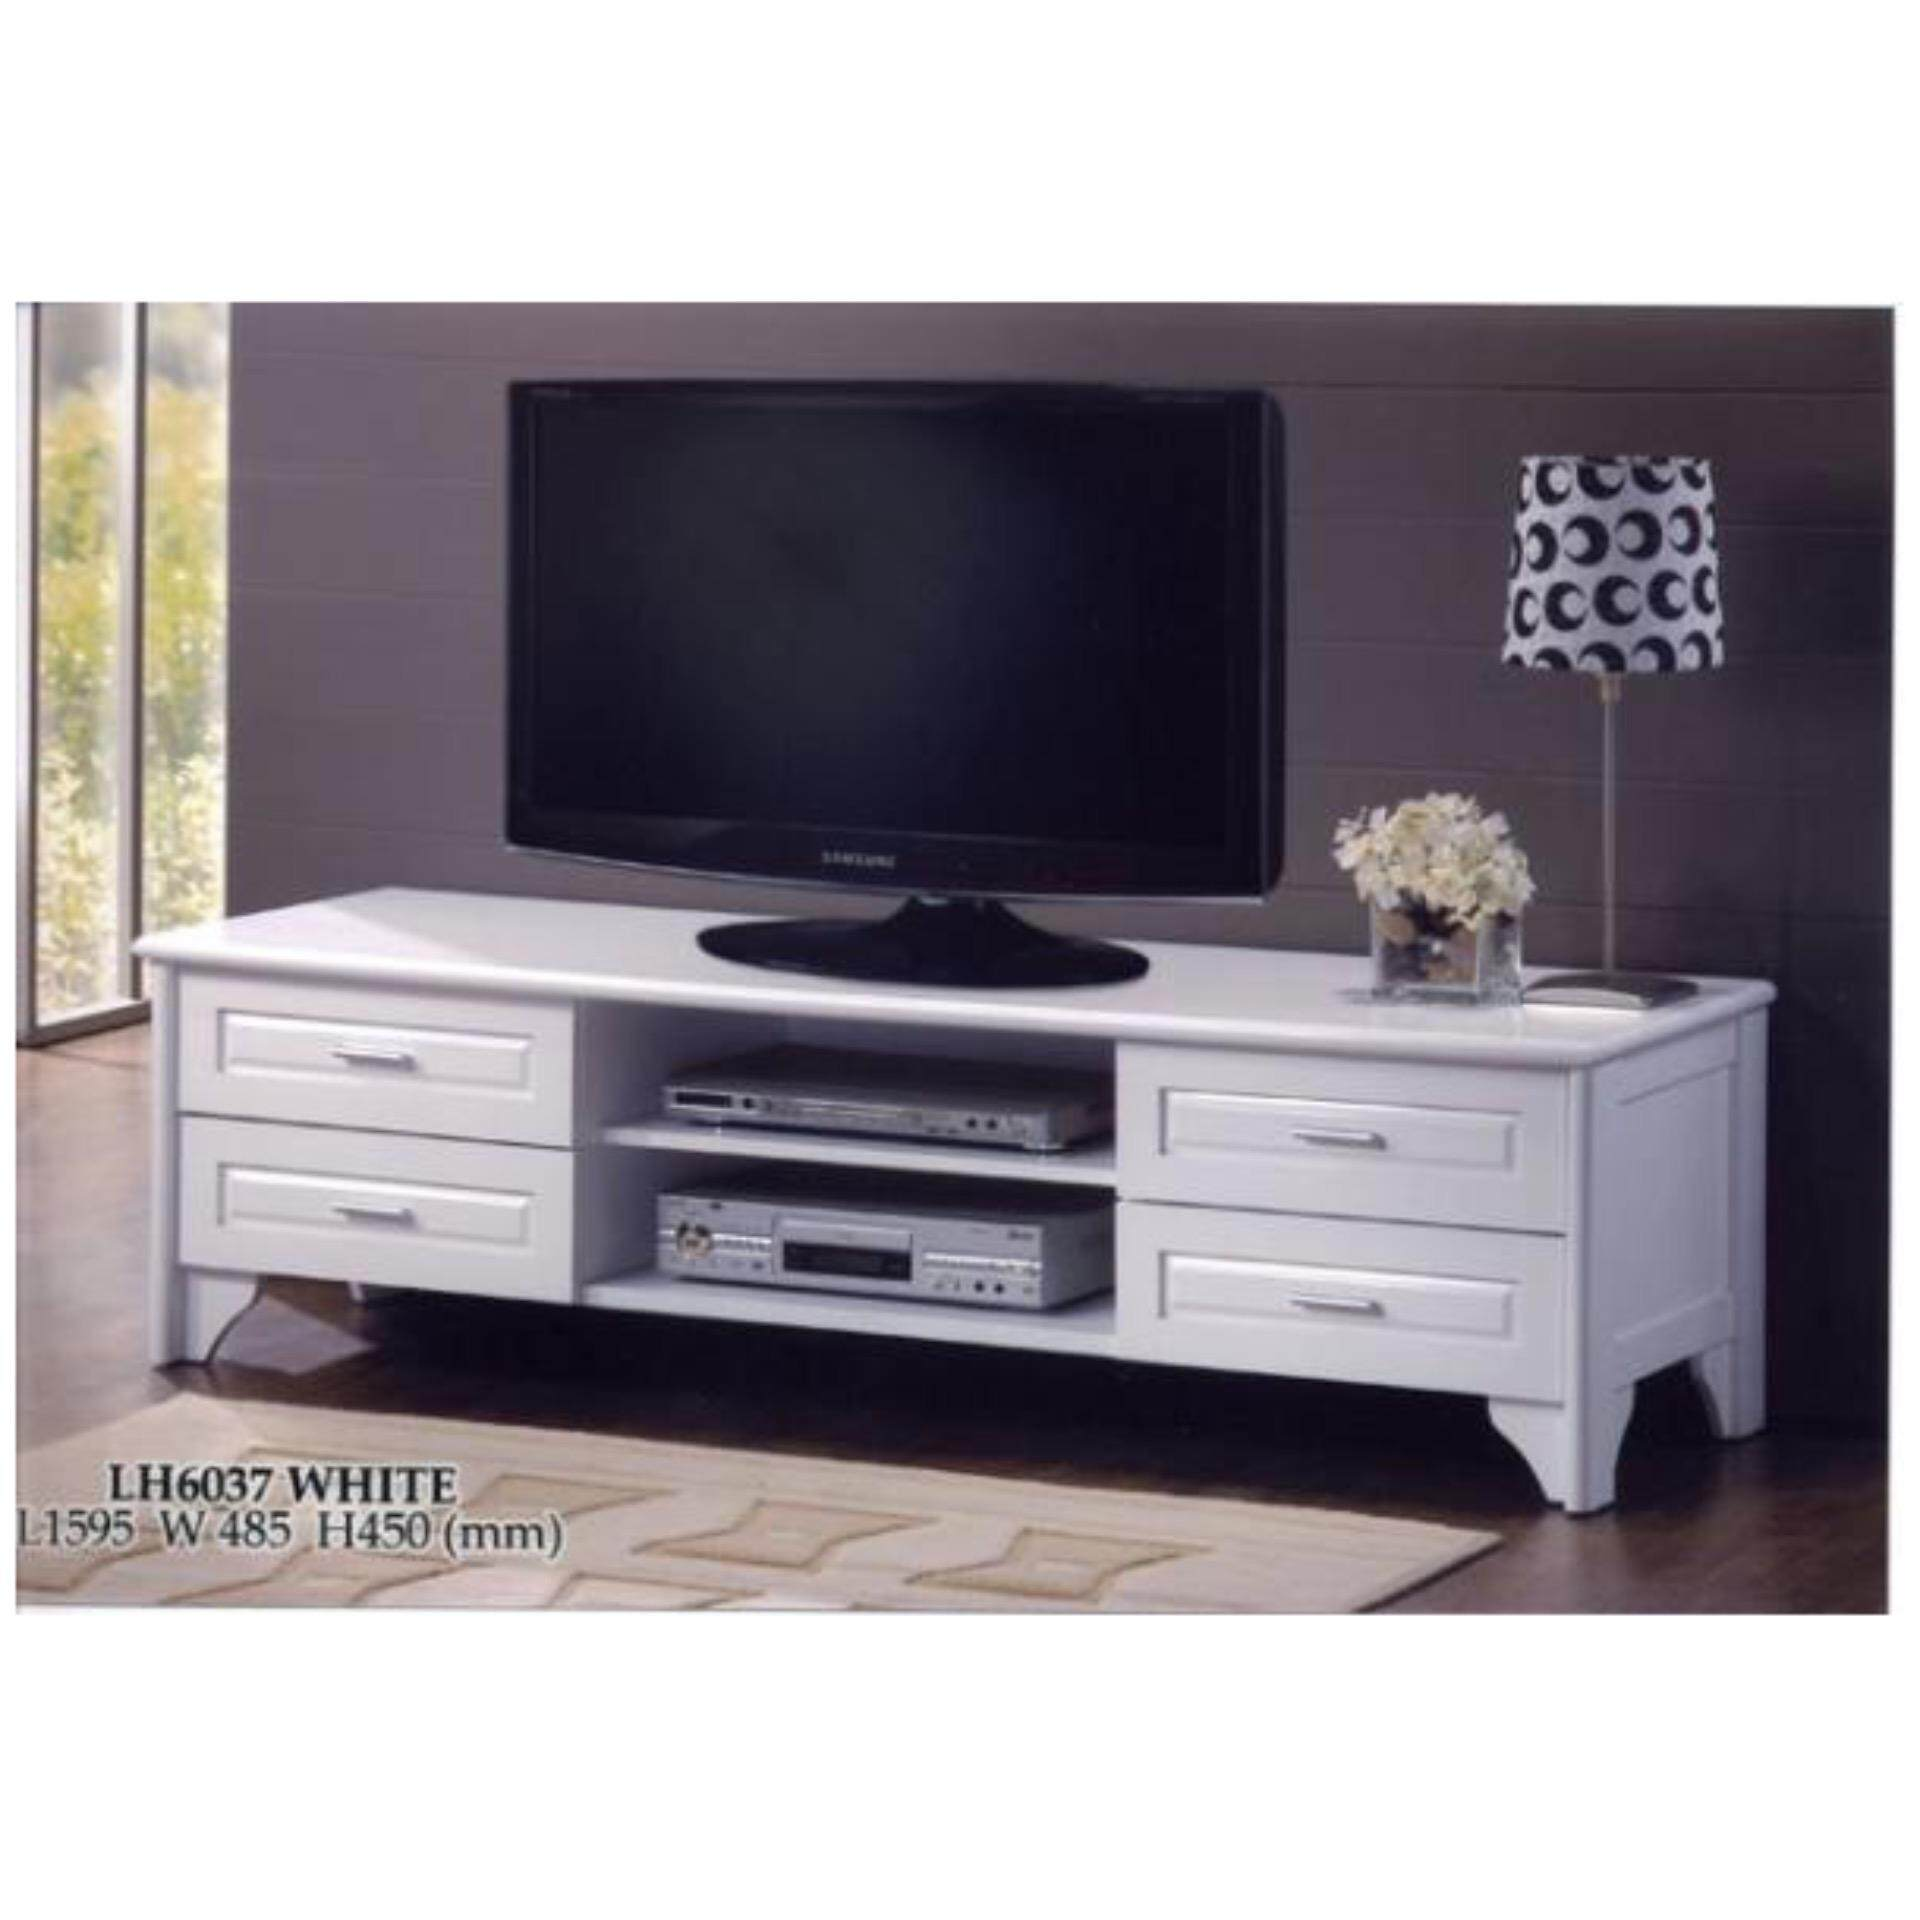 5 & 1/2 Feet Solid TV Cabinet Wood ( White )